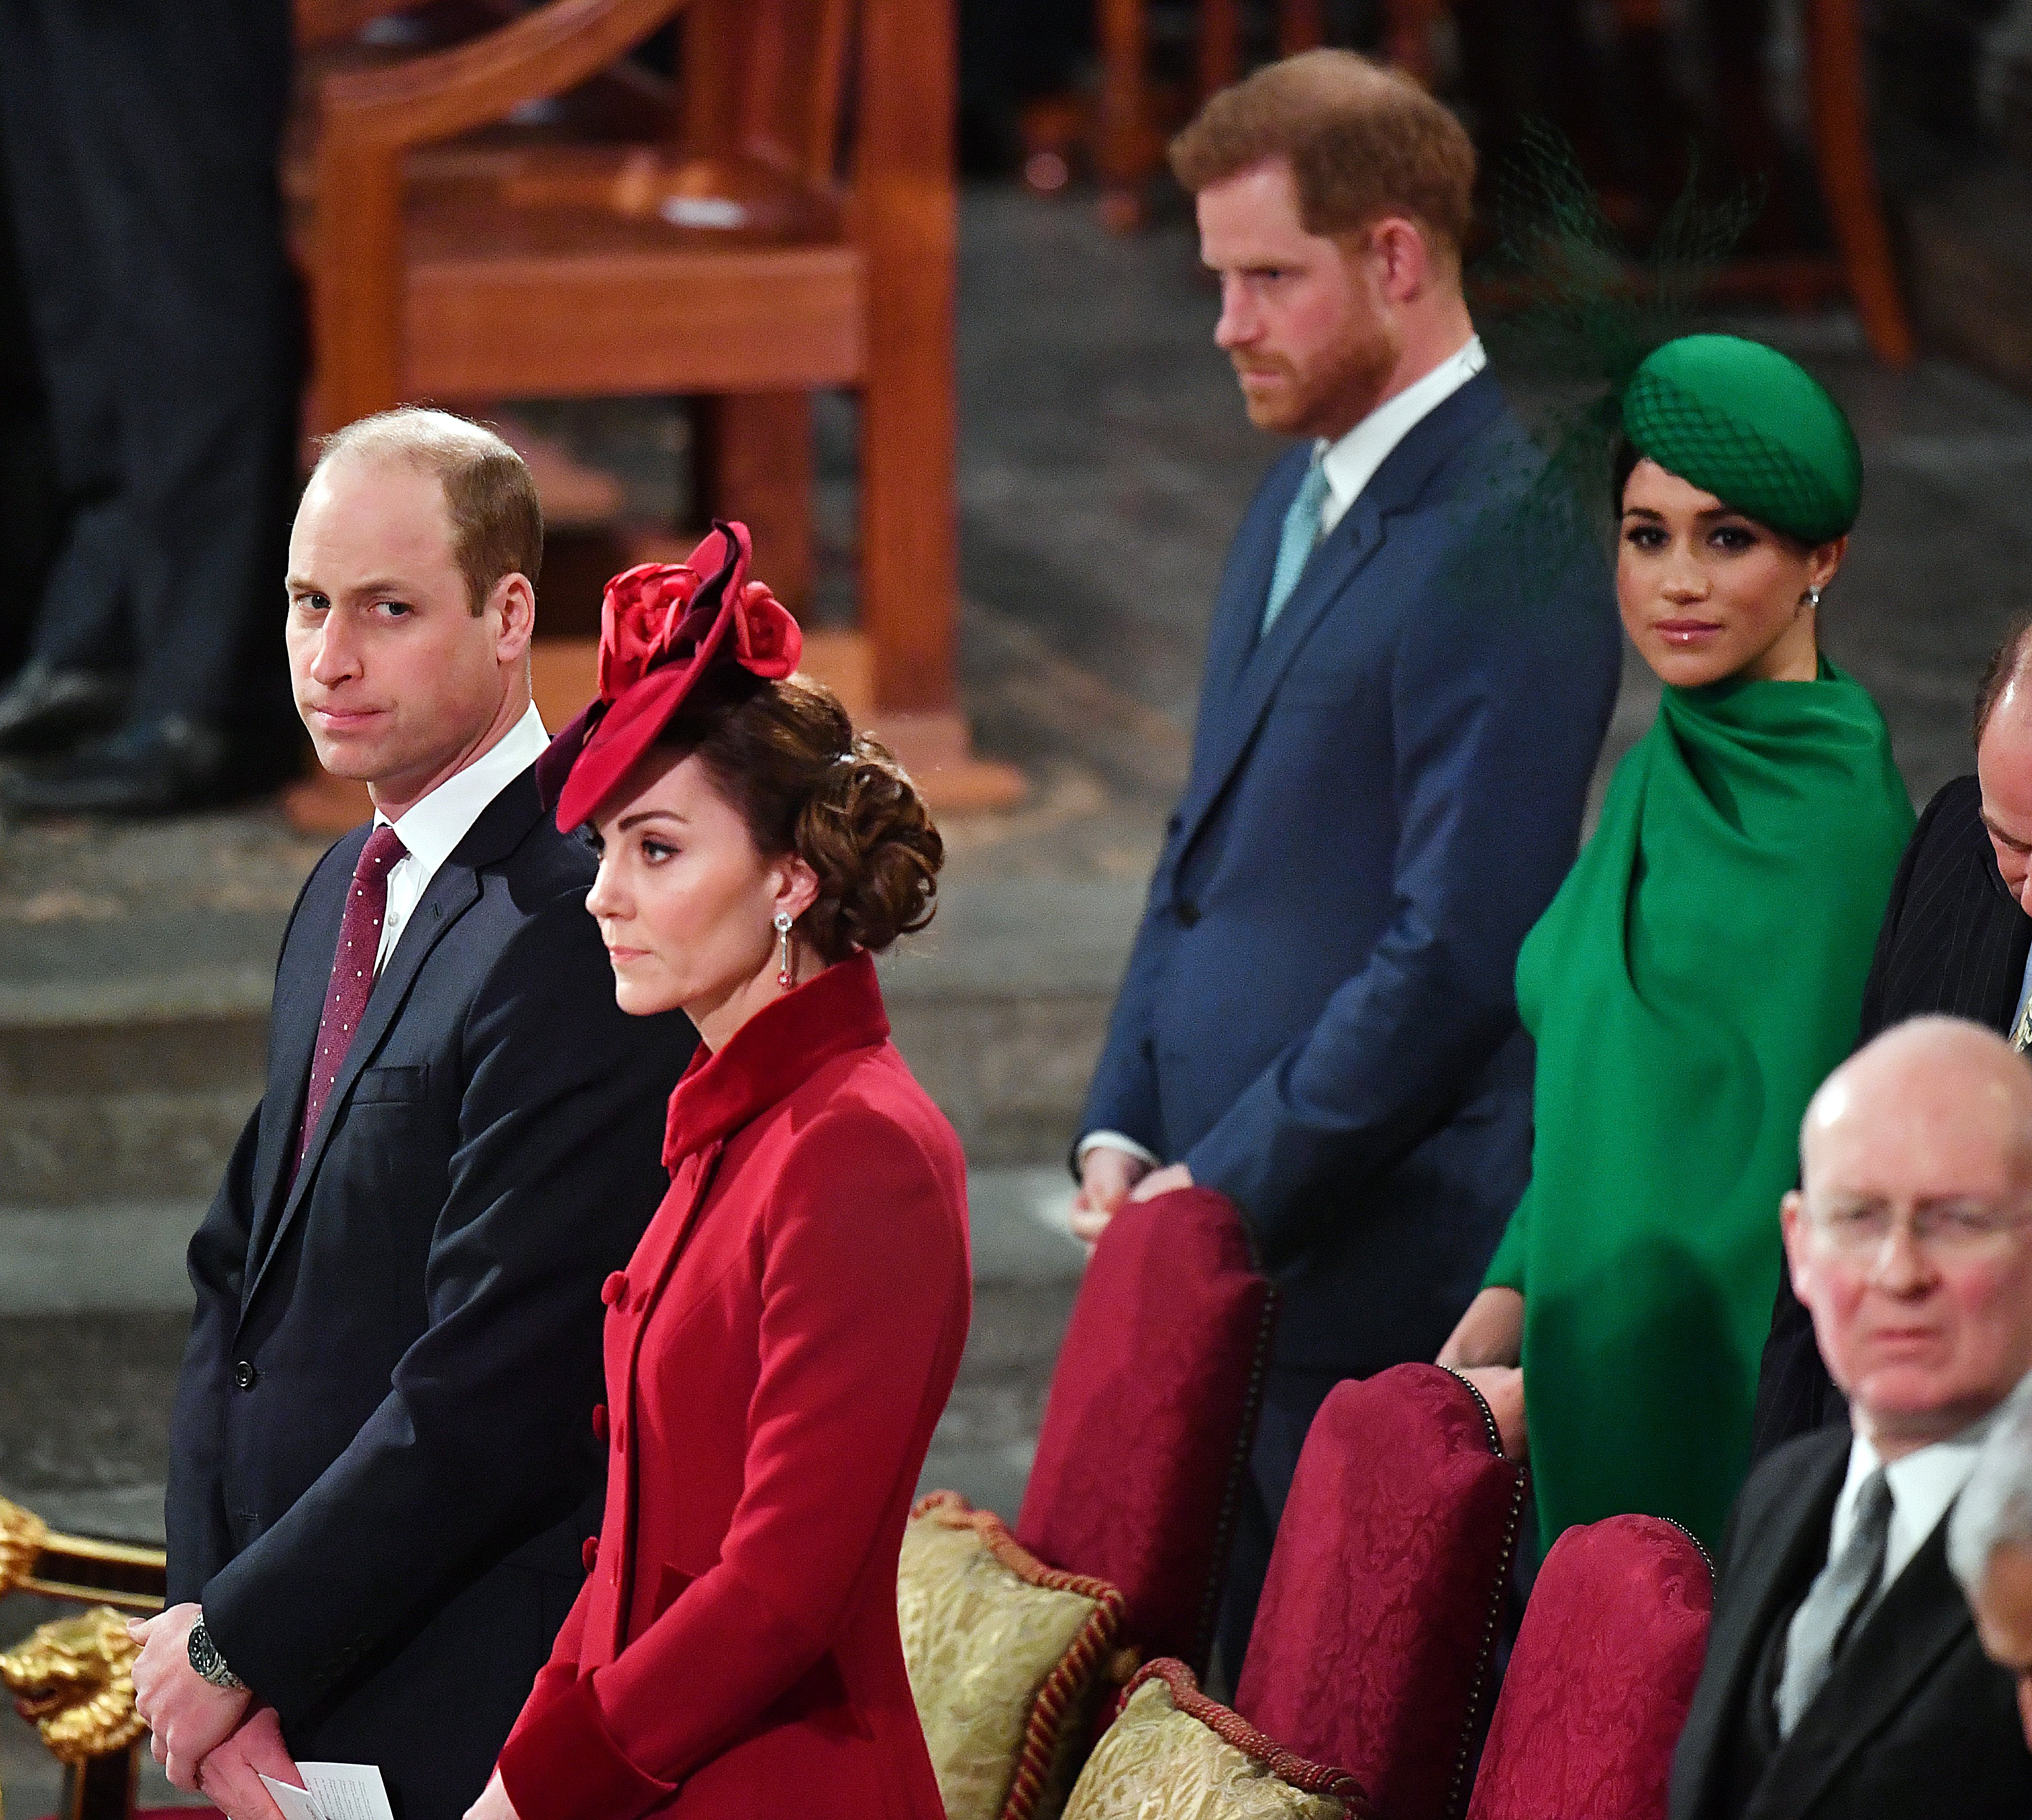 Prince William, Kate Middleton, Prince Harry, and Meghan Markle attend the Commonwealth Day Service 2020 on March 9, 2020   Photo: Getty Images